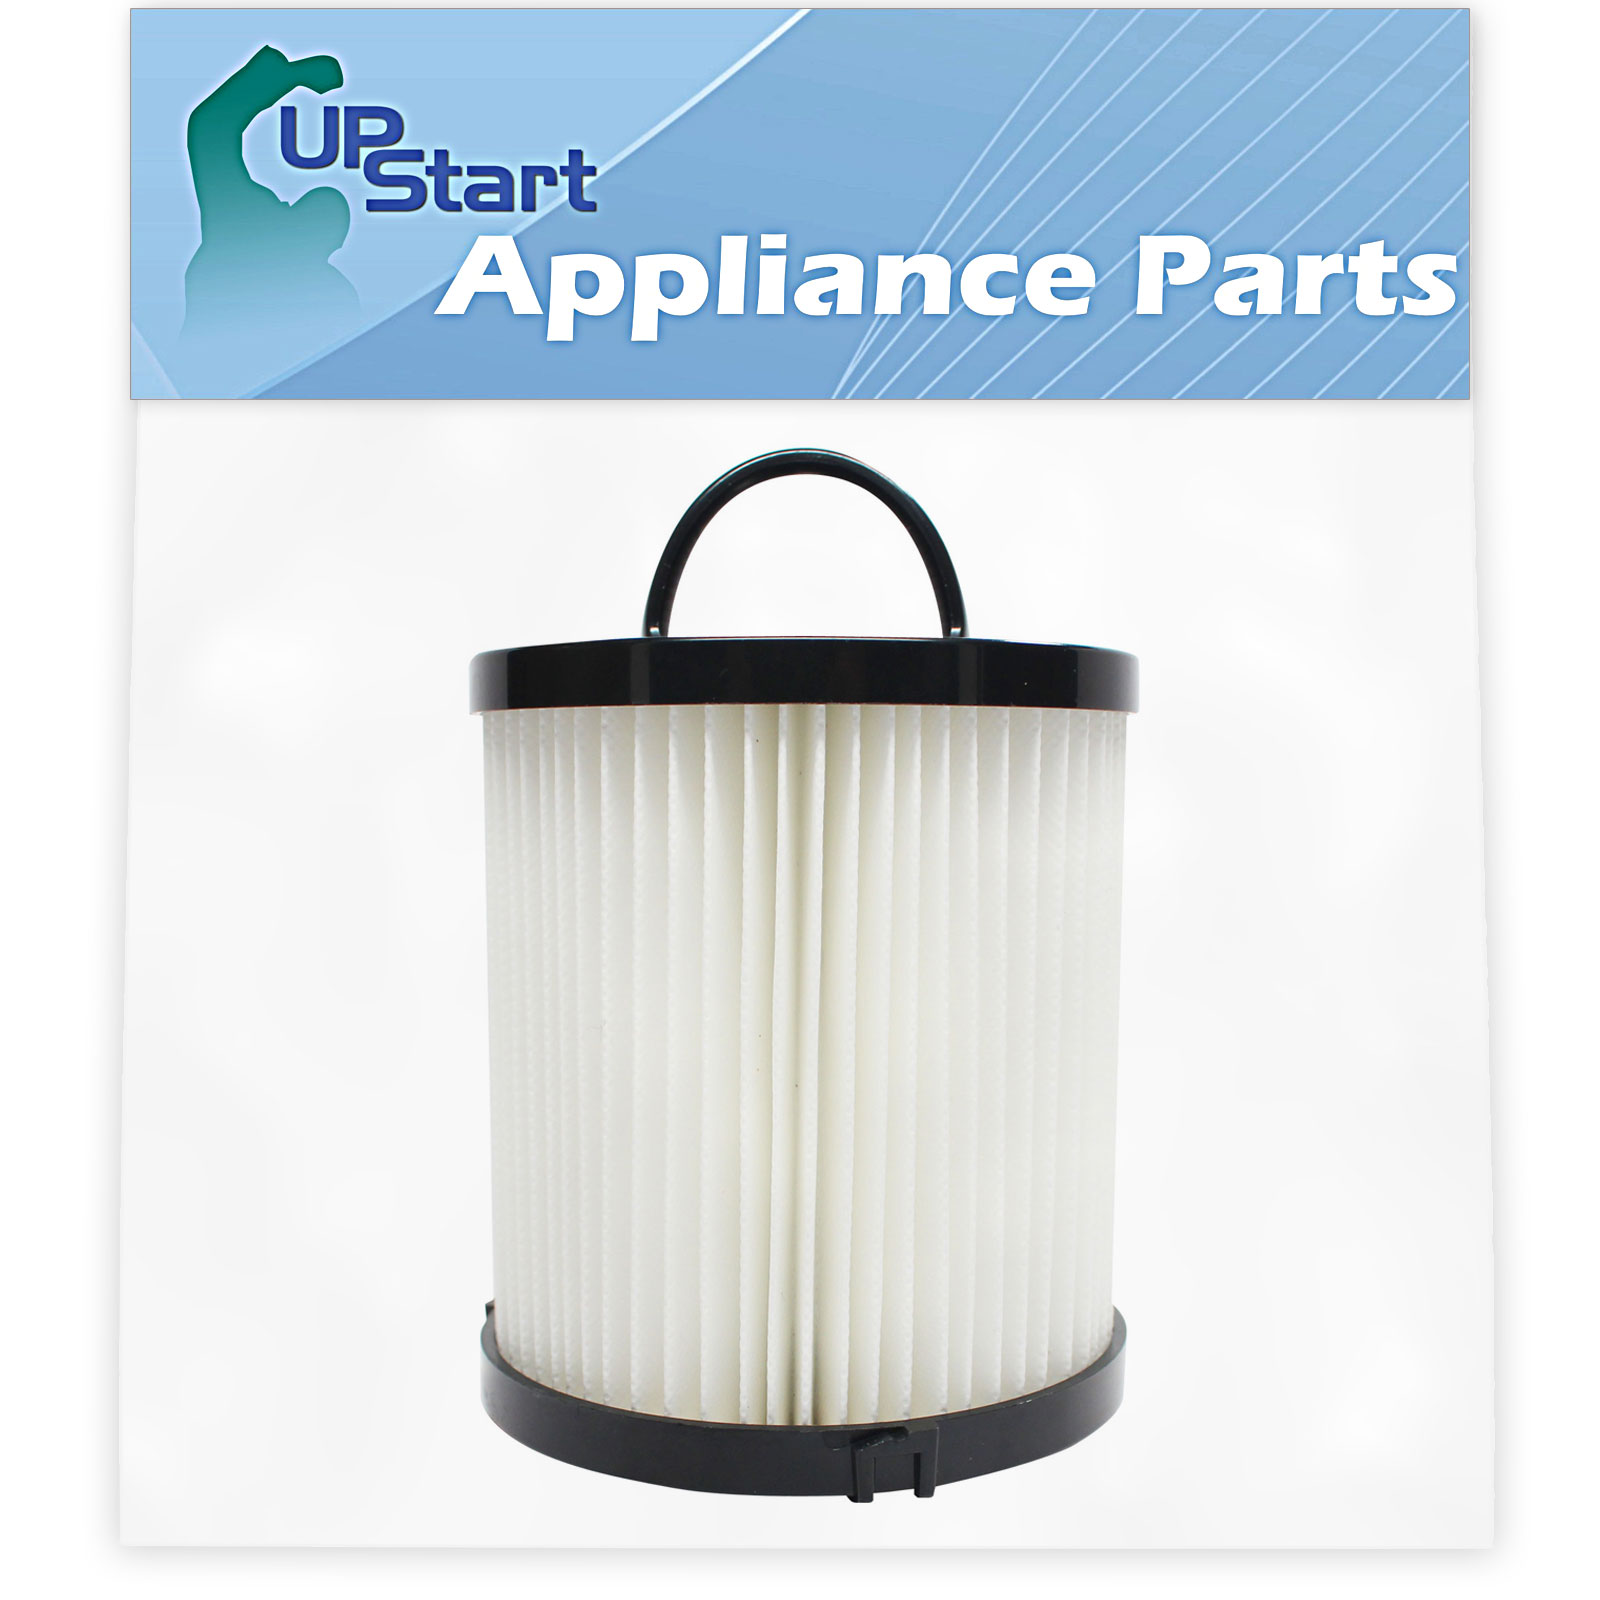 Replacement Sanitaire SC5845B Vacuum Dust Cup Filter - Compatible Sanitaire 71738A-4, 62136A Filter - image 4 of 4